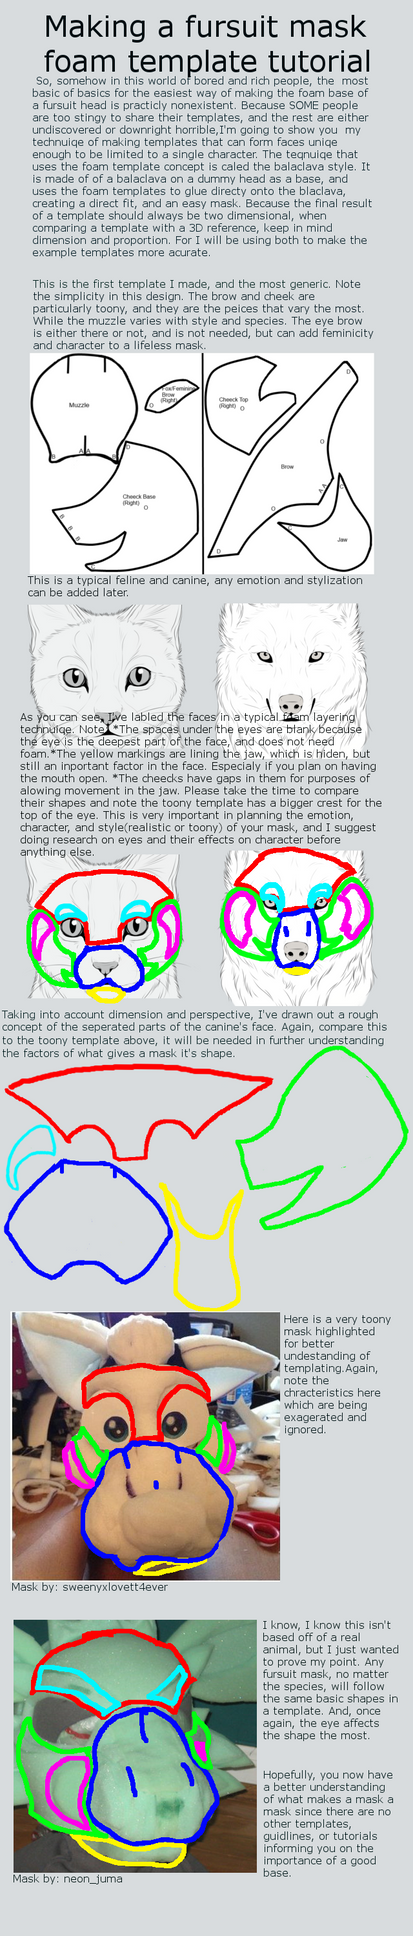 Making your own fursuit mask template tutorial by En-Seta